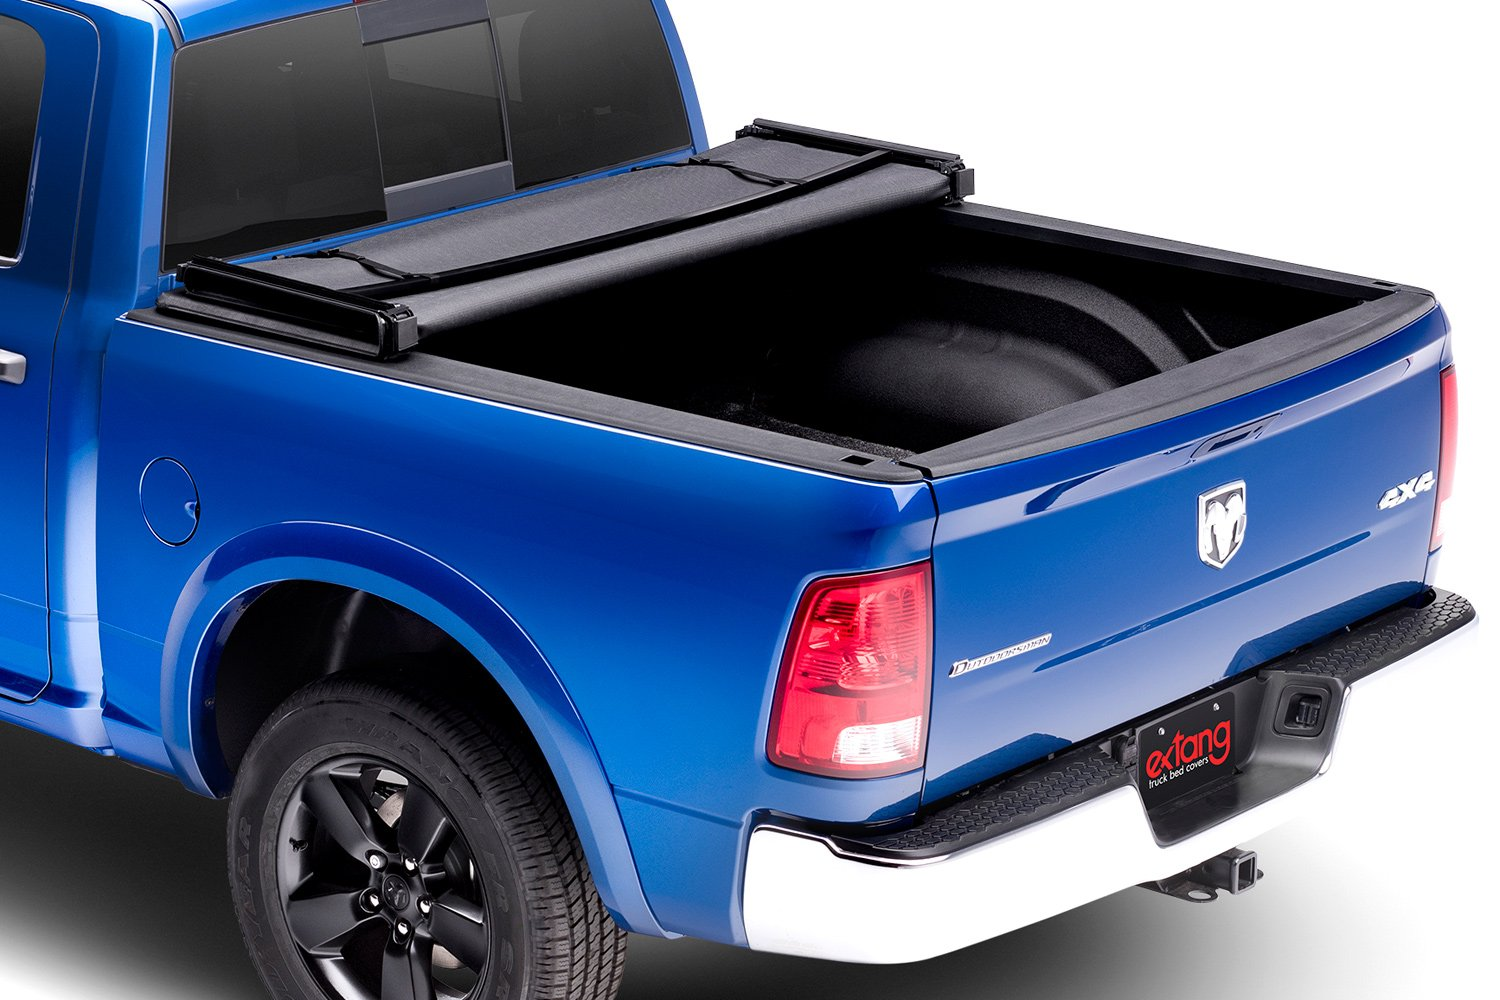 F 150 Truck Bed Covers >> Extang Trifecta 2.0 Tonneau Cover - Free Shipping